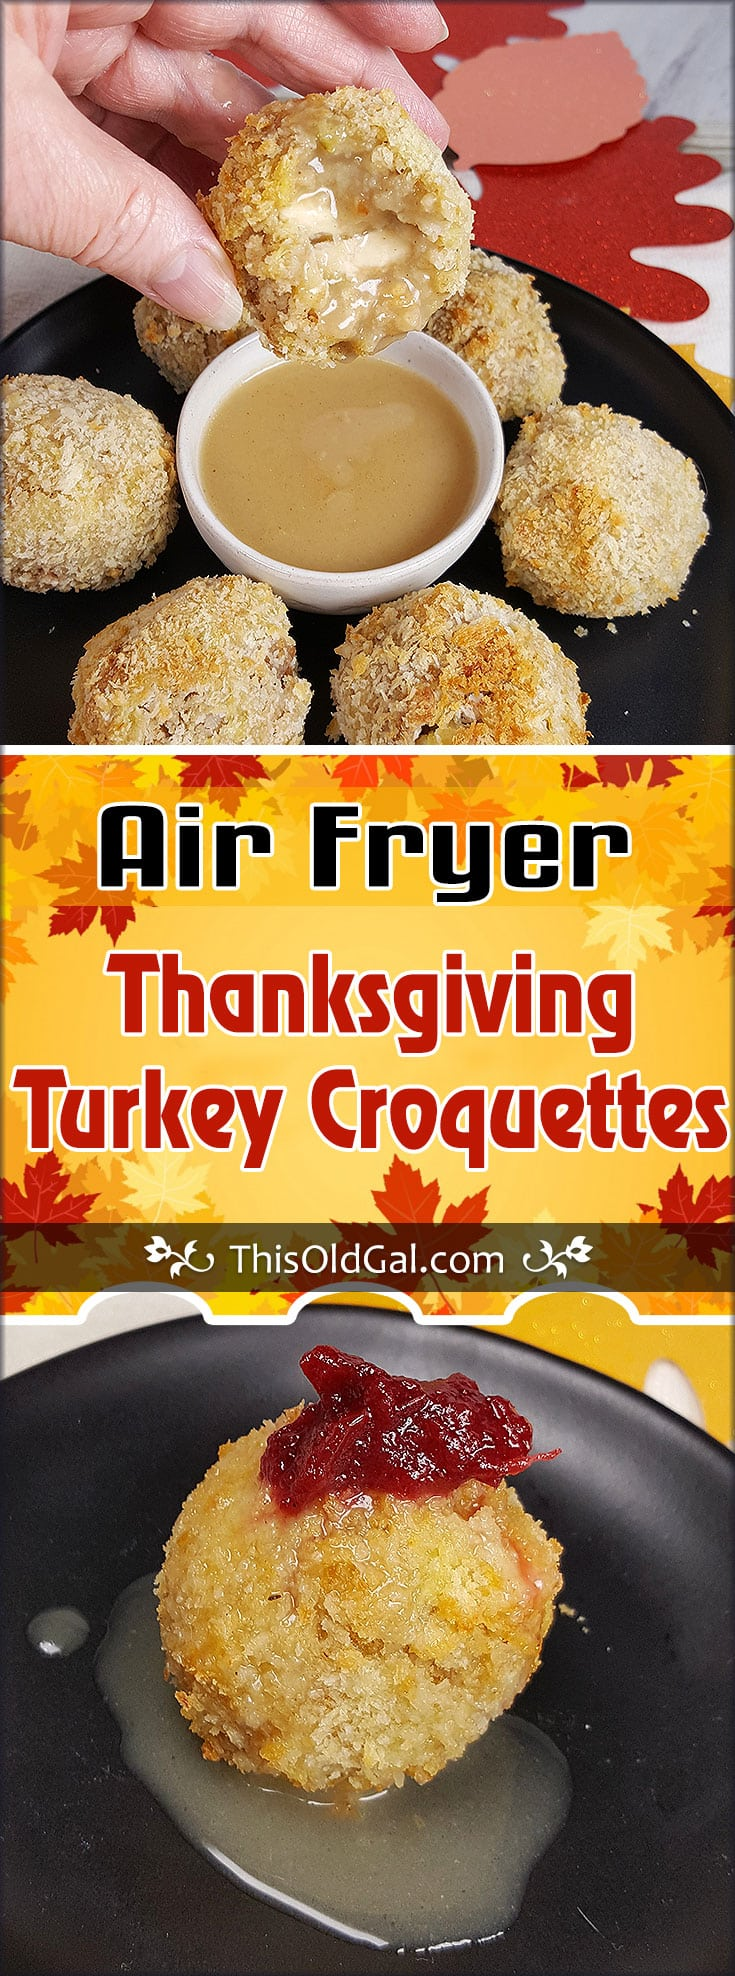 Air Fryer Thanksgiving Turkey Croquettes with Gravy